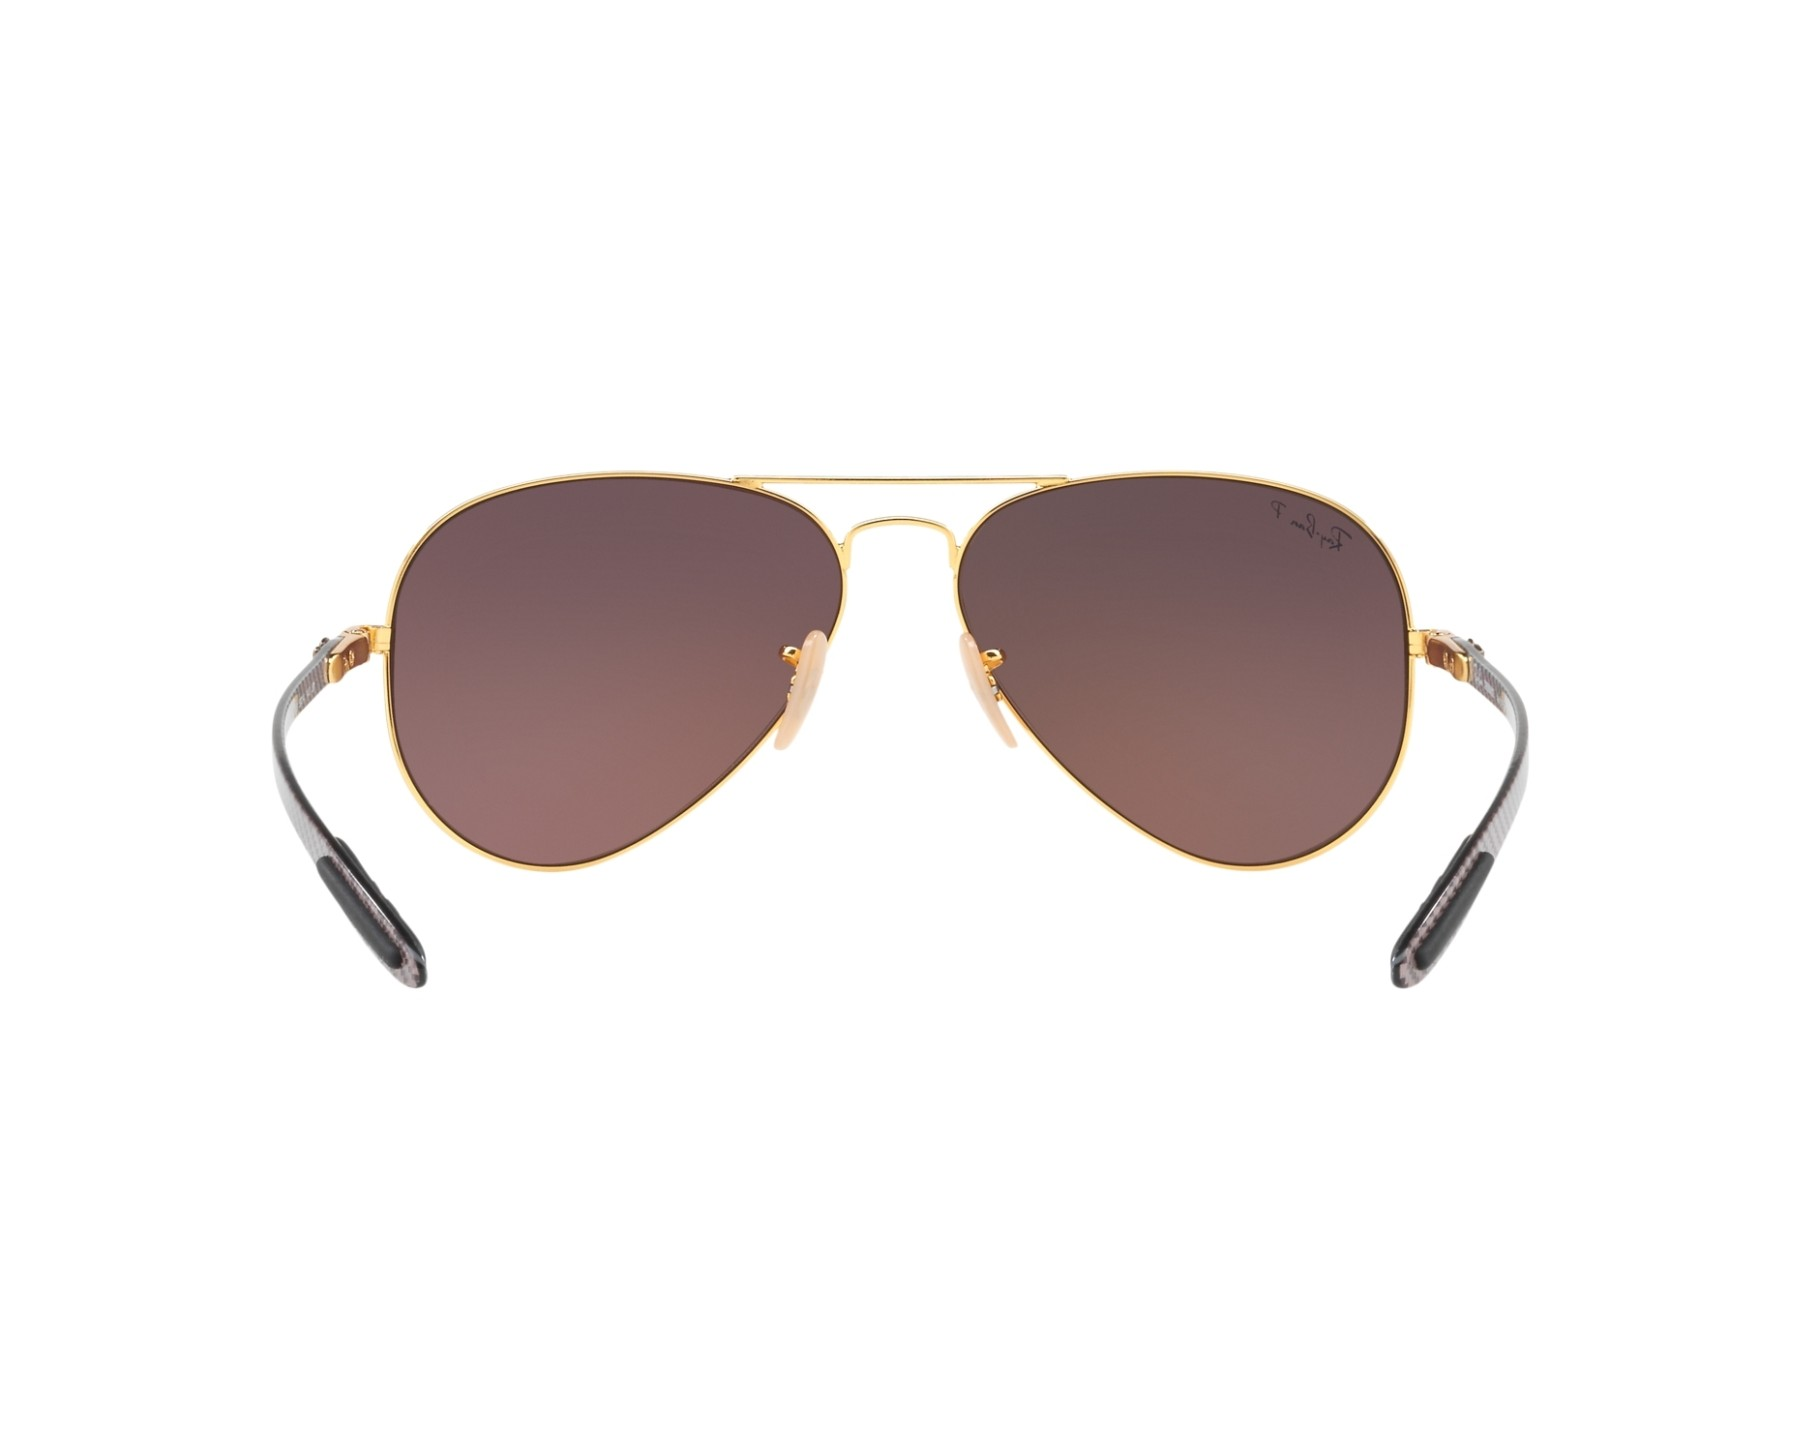 Ótica View Óculos de sol Ray Ban RB 8317 003 5J - Lente 58mm. Ray-Ban  Sunglasses RB-8317-CH 001 6B  Buy now and 6723ffe45a